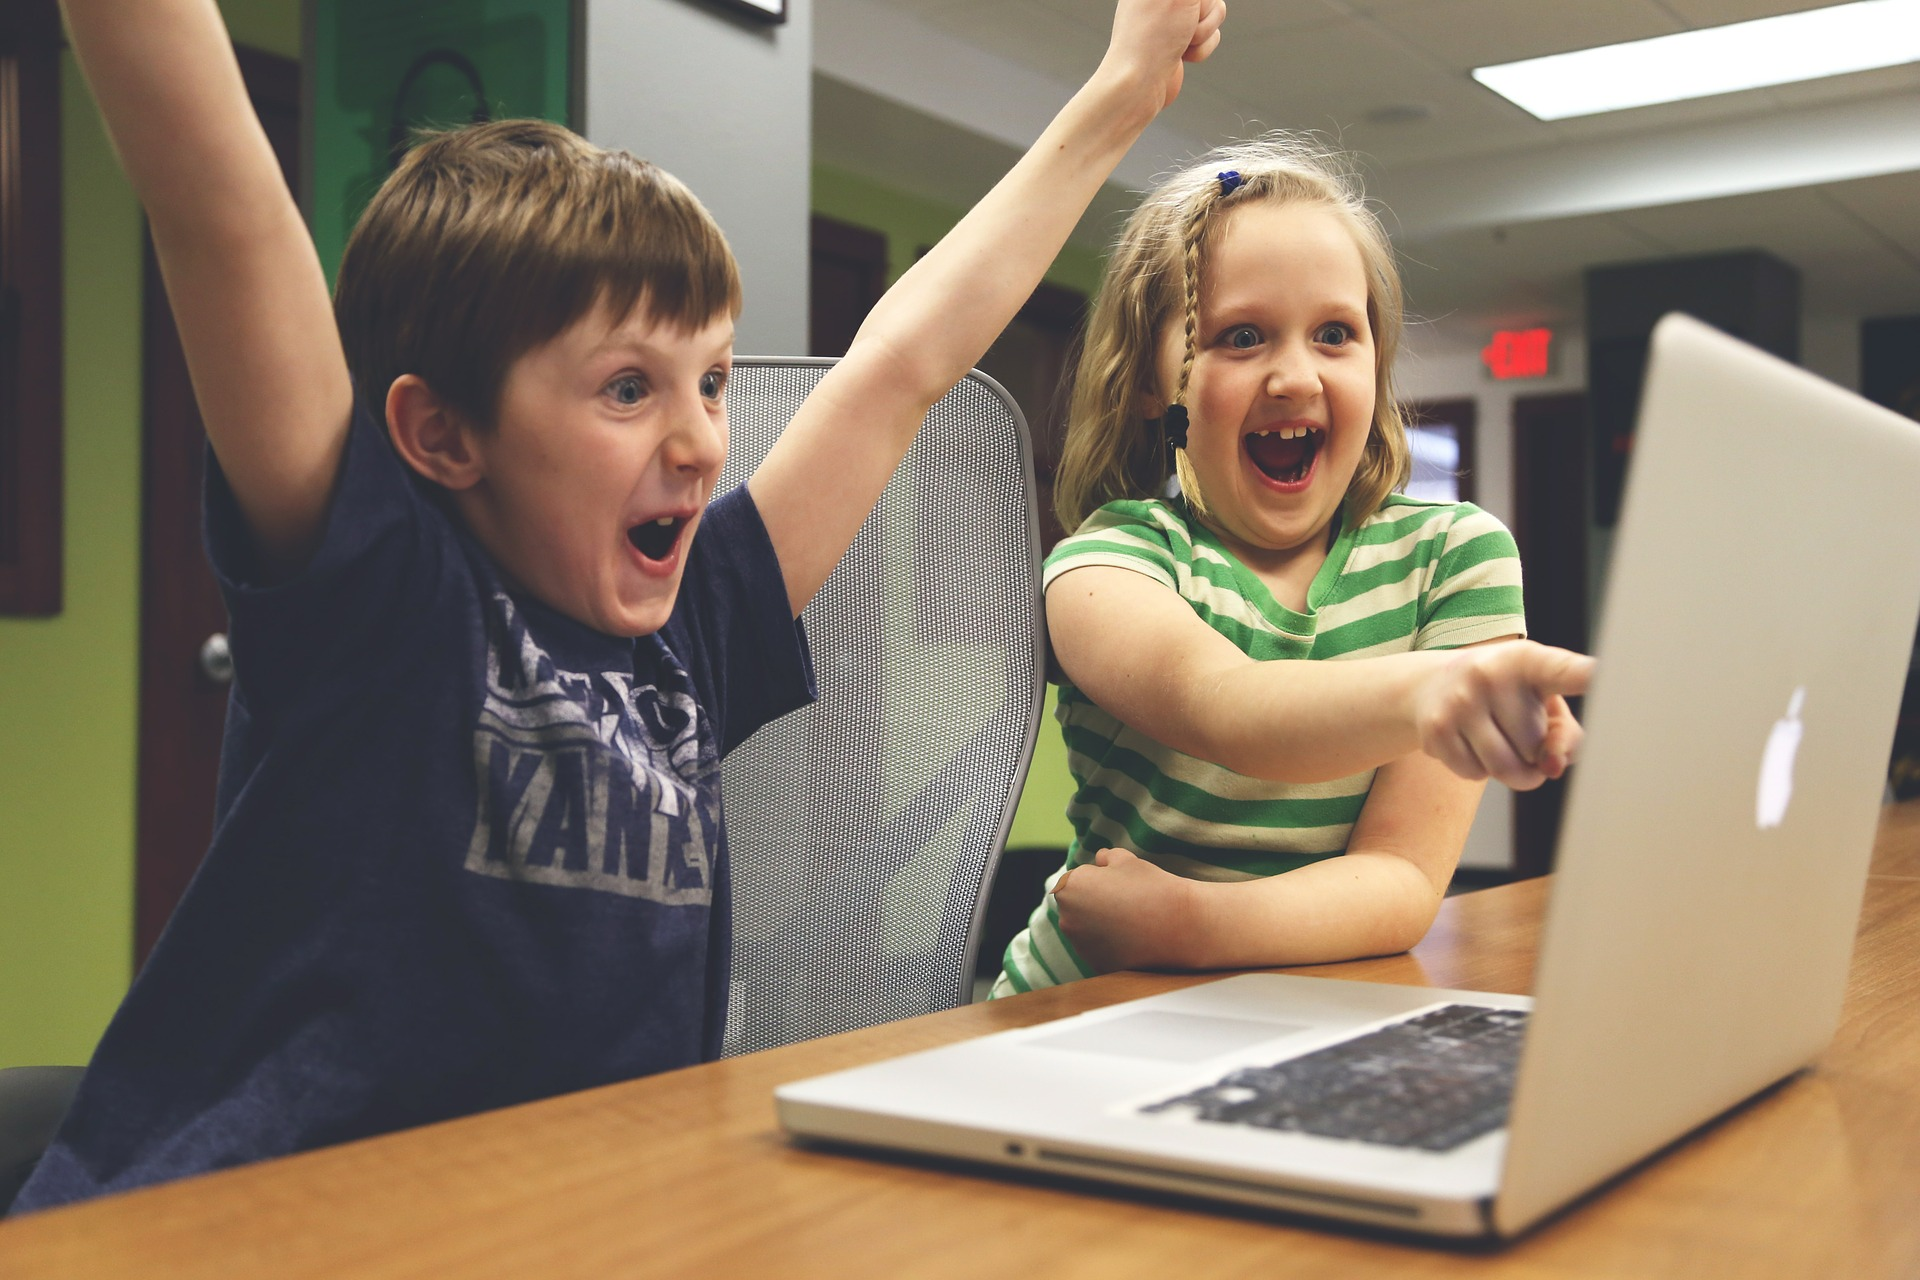 Kids excited at computer